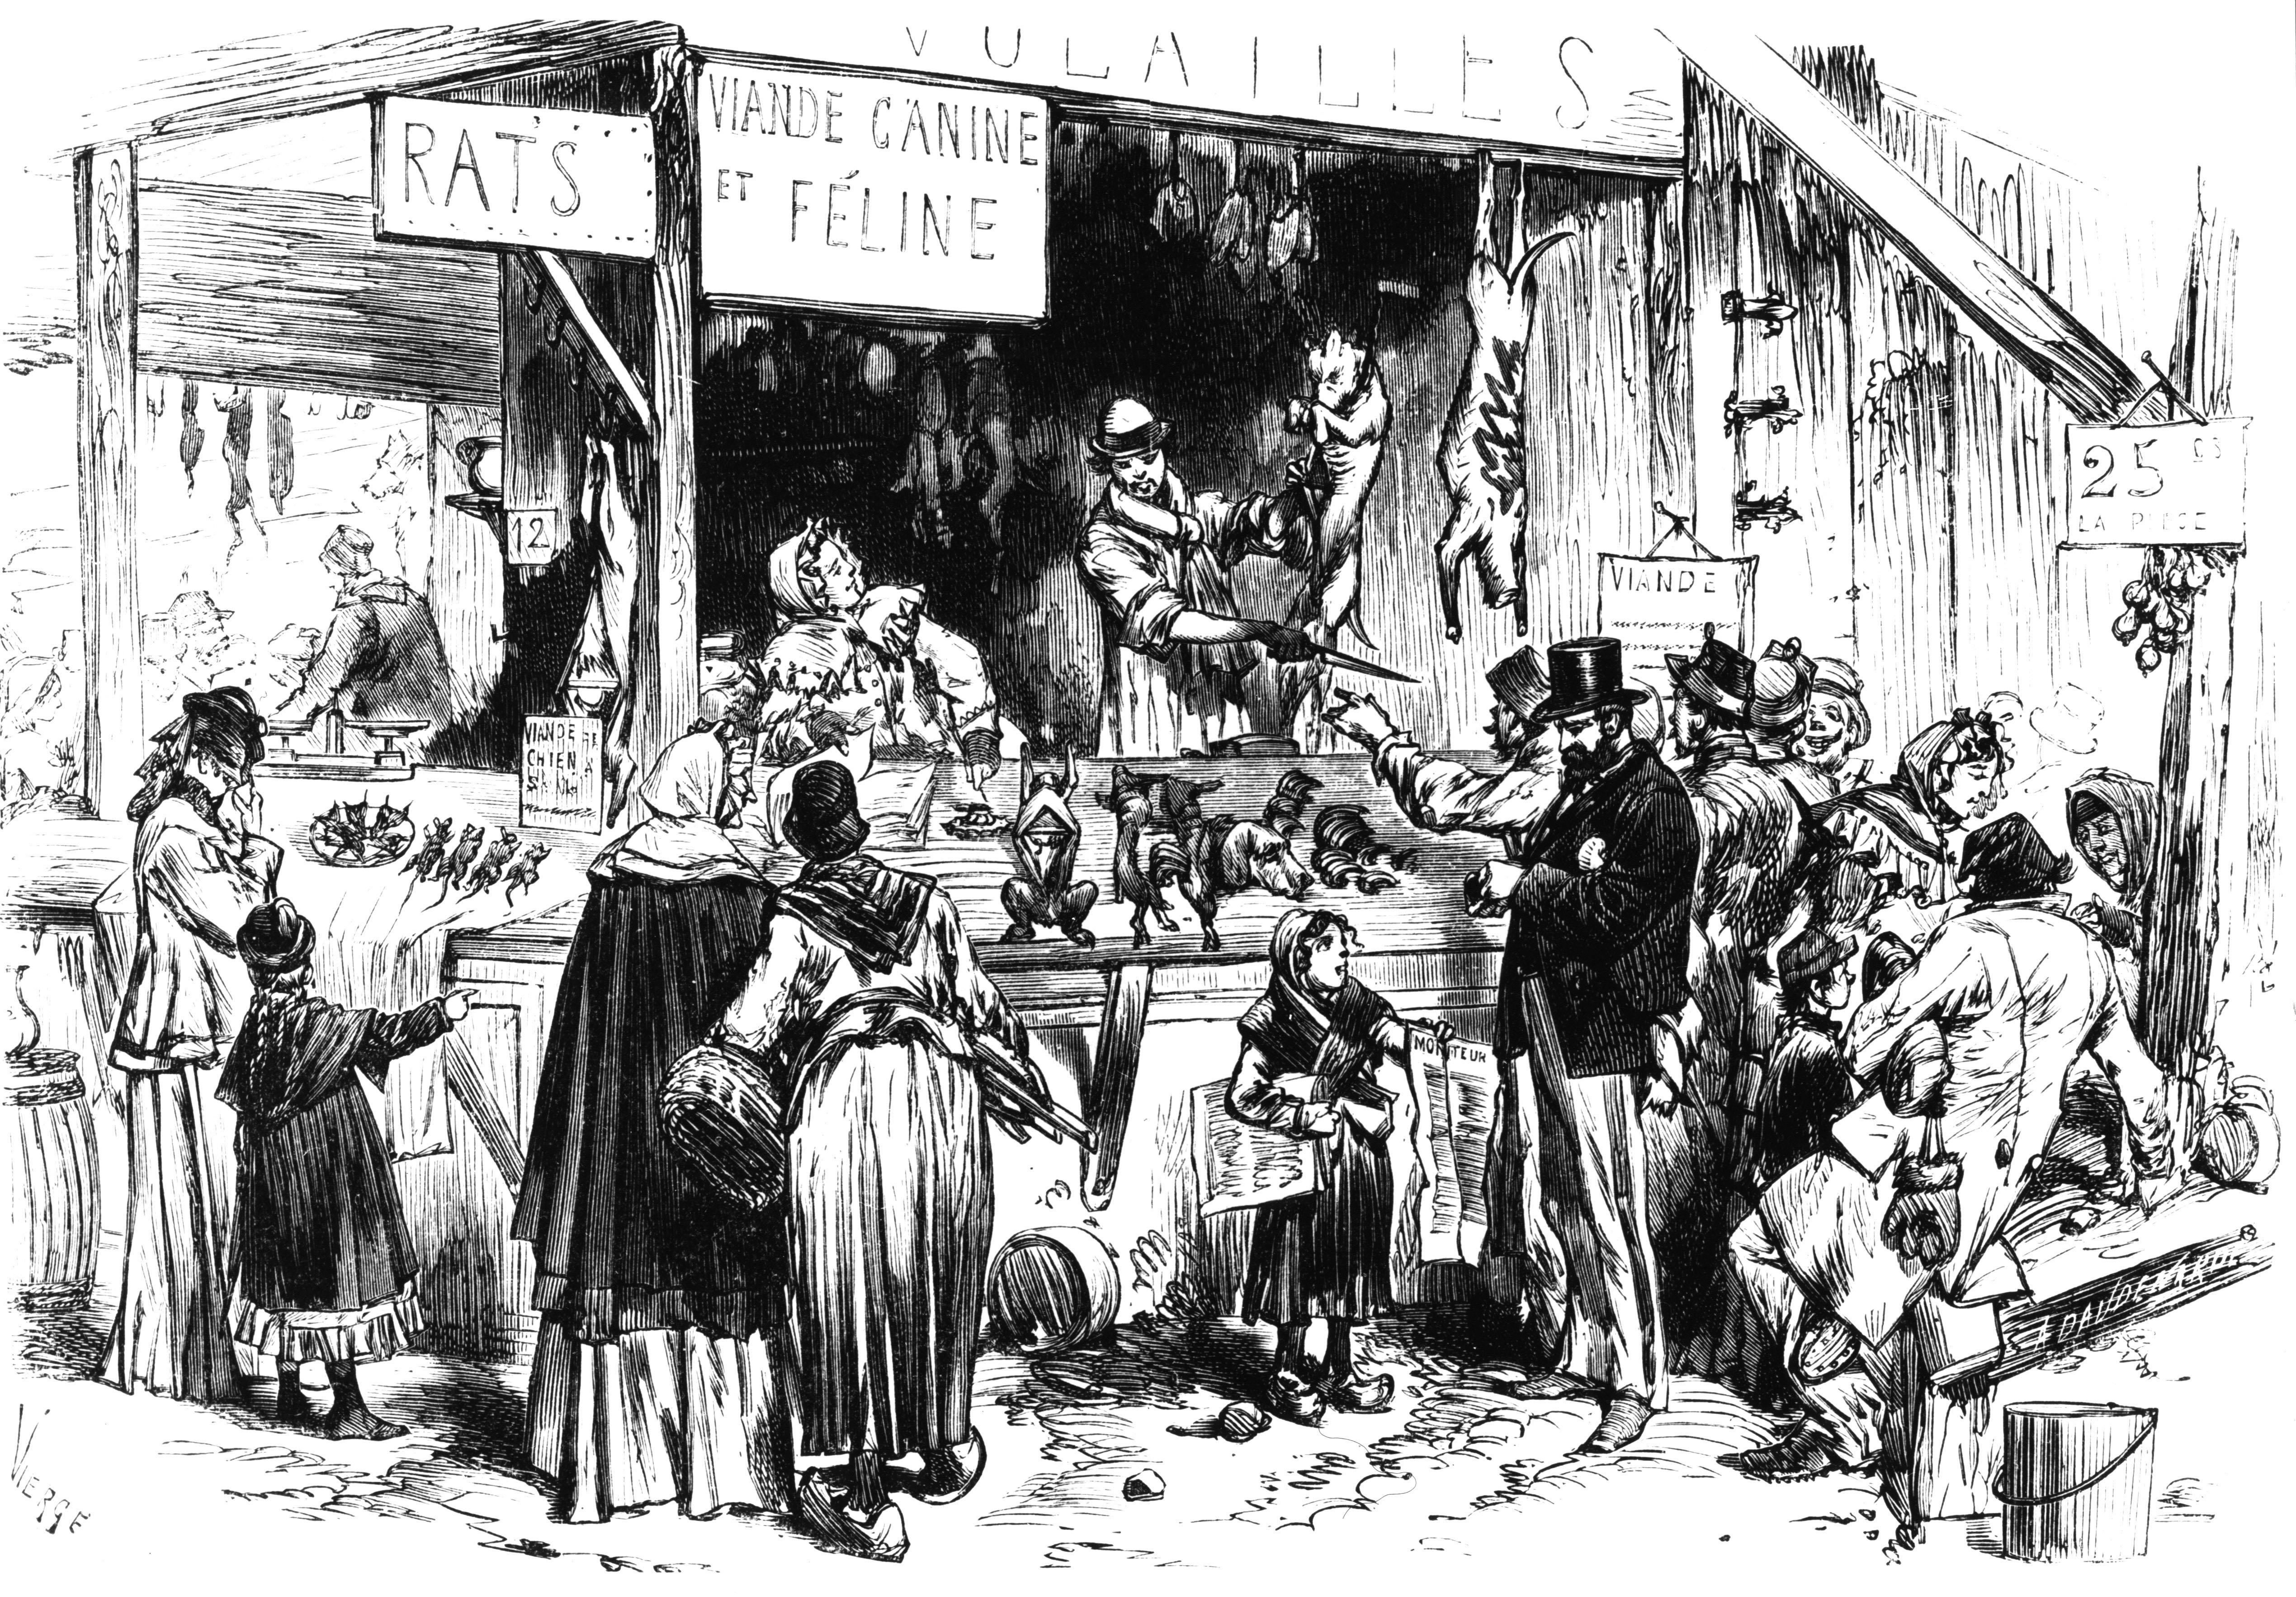 During the Siege of Paris (1870–1871), dogs, cats, and rats were sold at the market. Credit: INTERFOTO / Alamy Stock Photo